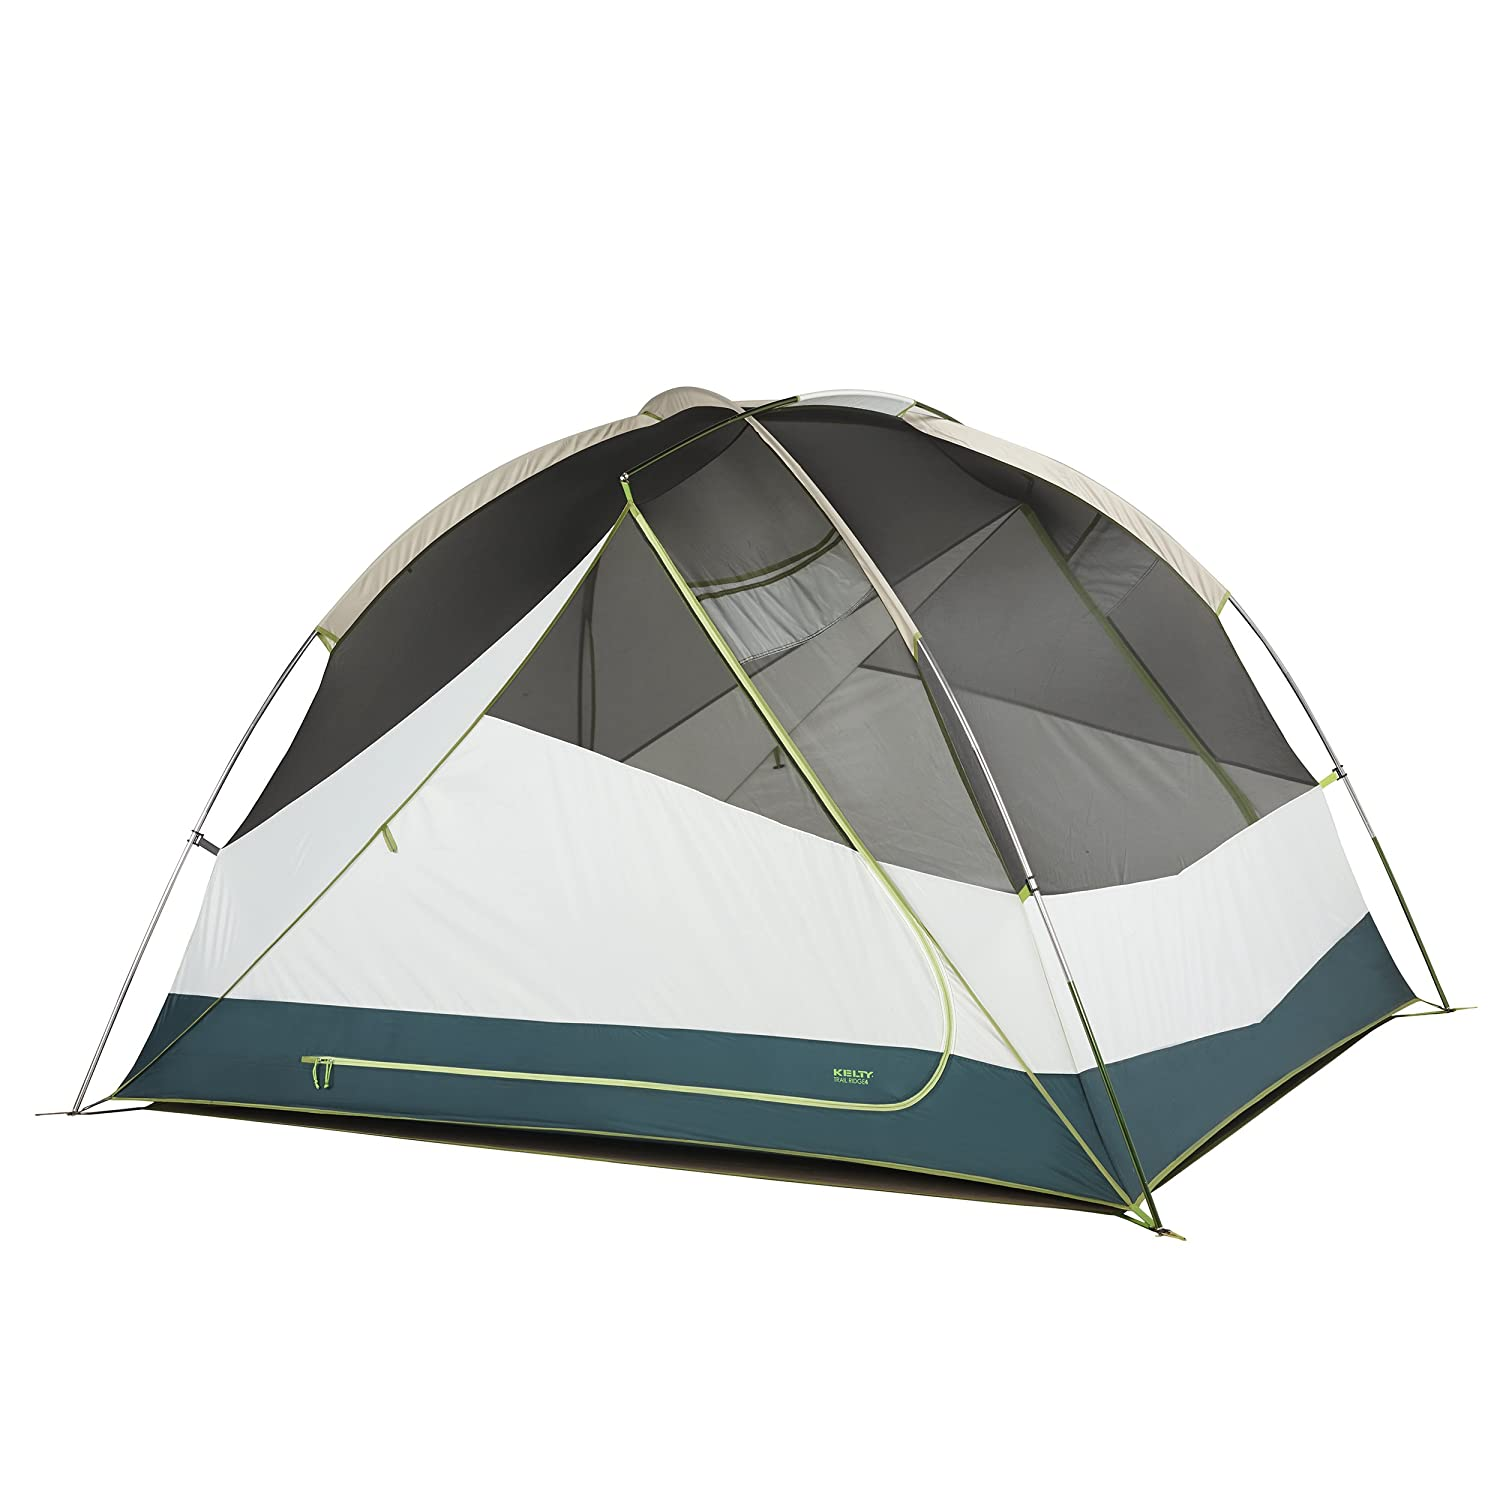 Amazon.com  Kelty Trail Ridge 4 Tent with footprint - 4 Person  Sports u0026 Outdoors  sc 1 st  Amazon.com & Amazon.com : Kelty Trail Ridge 4 Tent with footprint - 4 Person ...